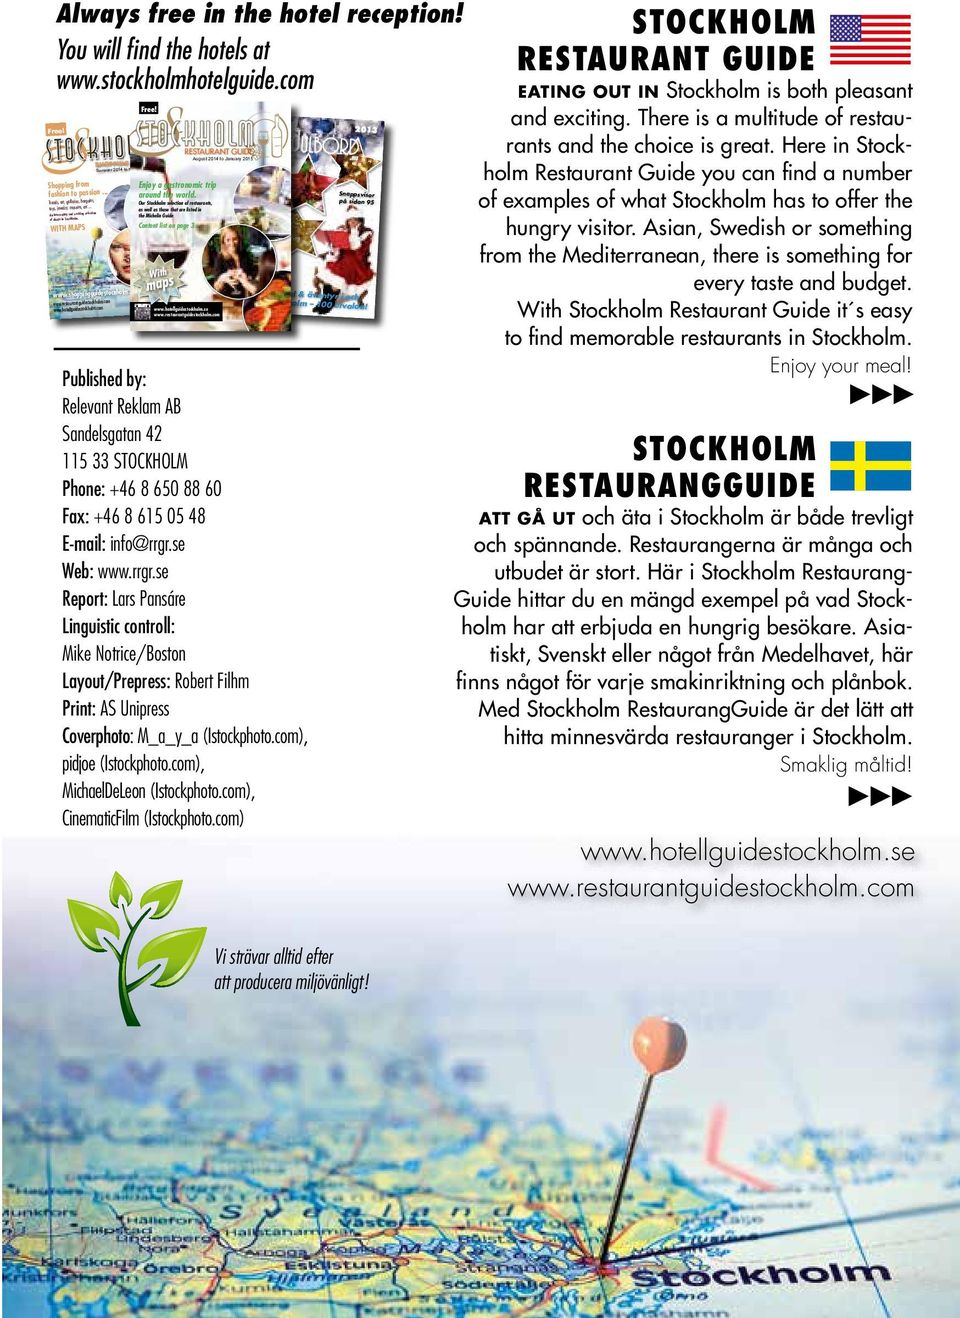 shoppingguidestockholm.com Free! Enjoy a gastronomic trip around the world.